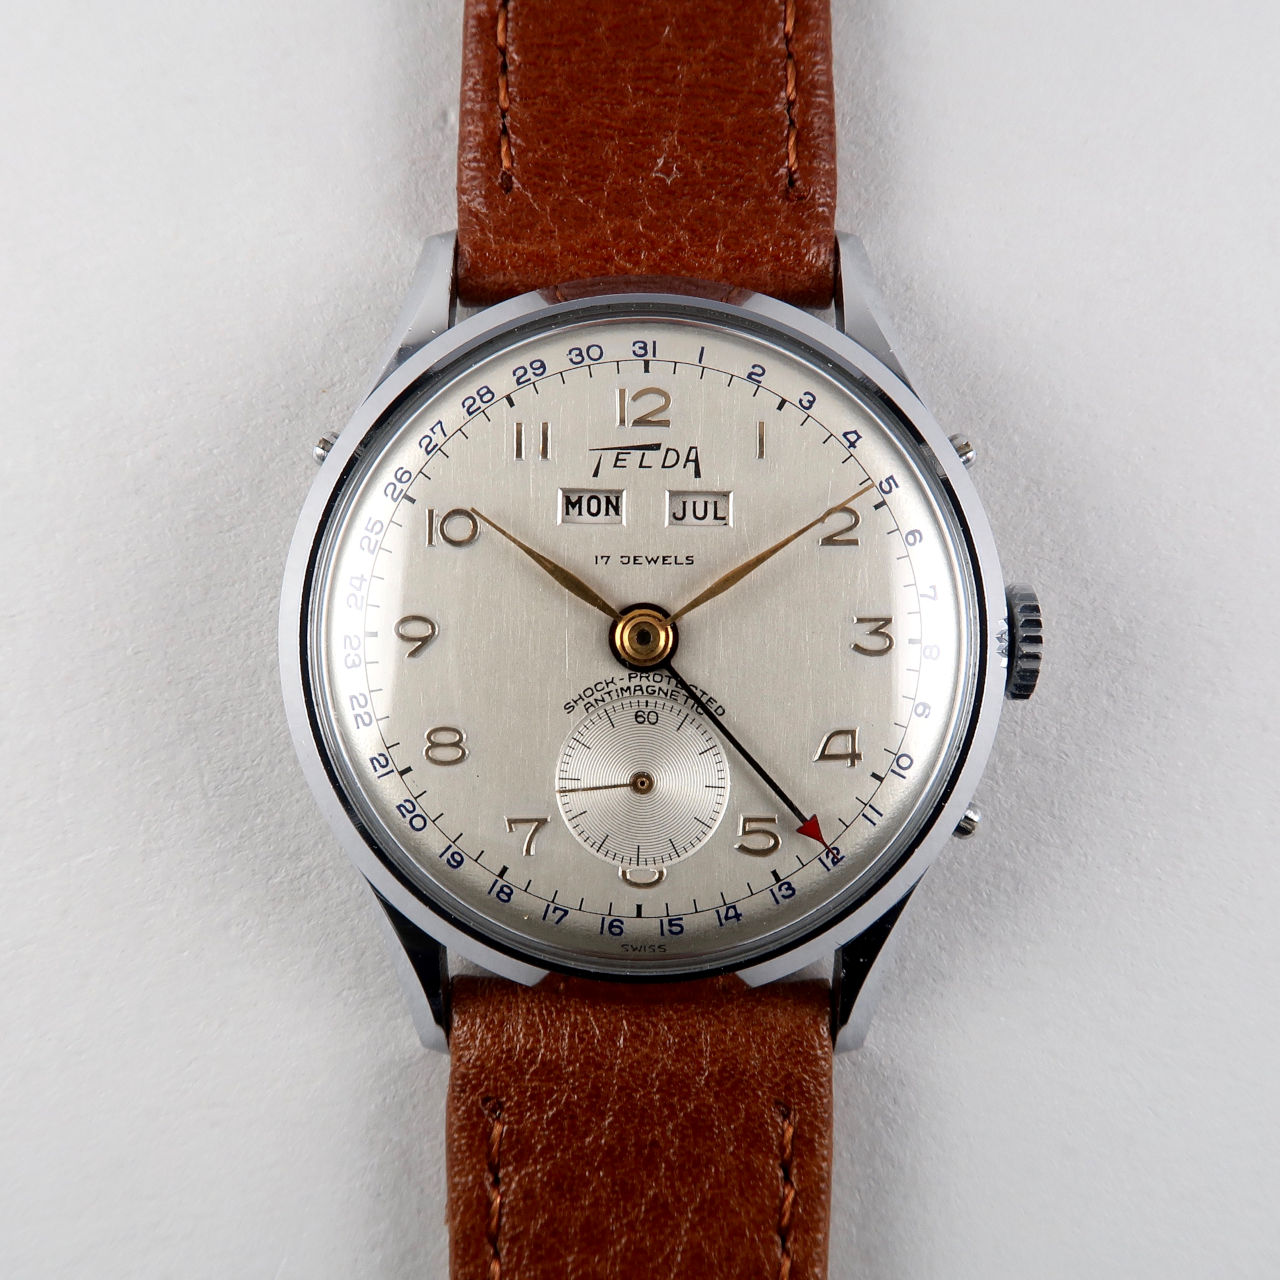 Telda circa 1950 | chrome & steel manual vintage wristwatch